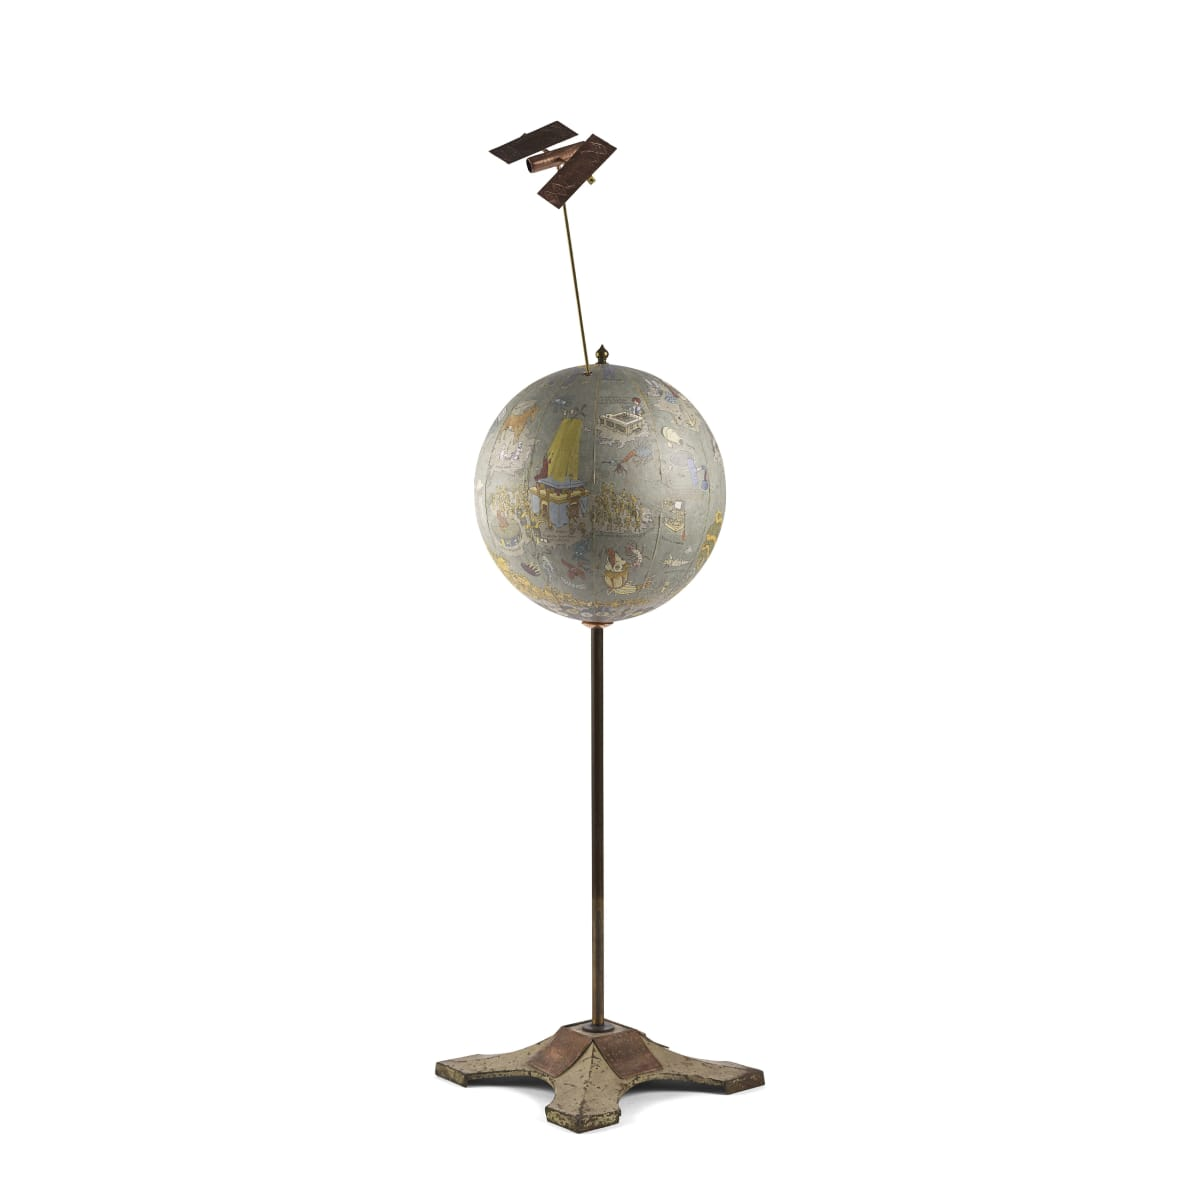 The Talosiad or the Mechanical Egg, Where the Satellite Navigation Guides the iEpic Peregrinations of a Heroic Android 2018; signed and titled mixed media | 85 x 26 cm